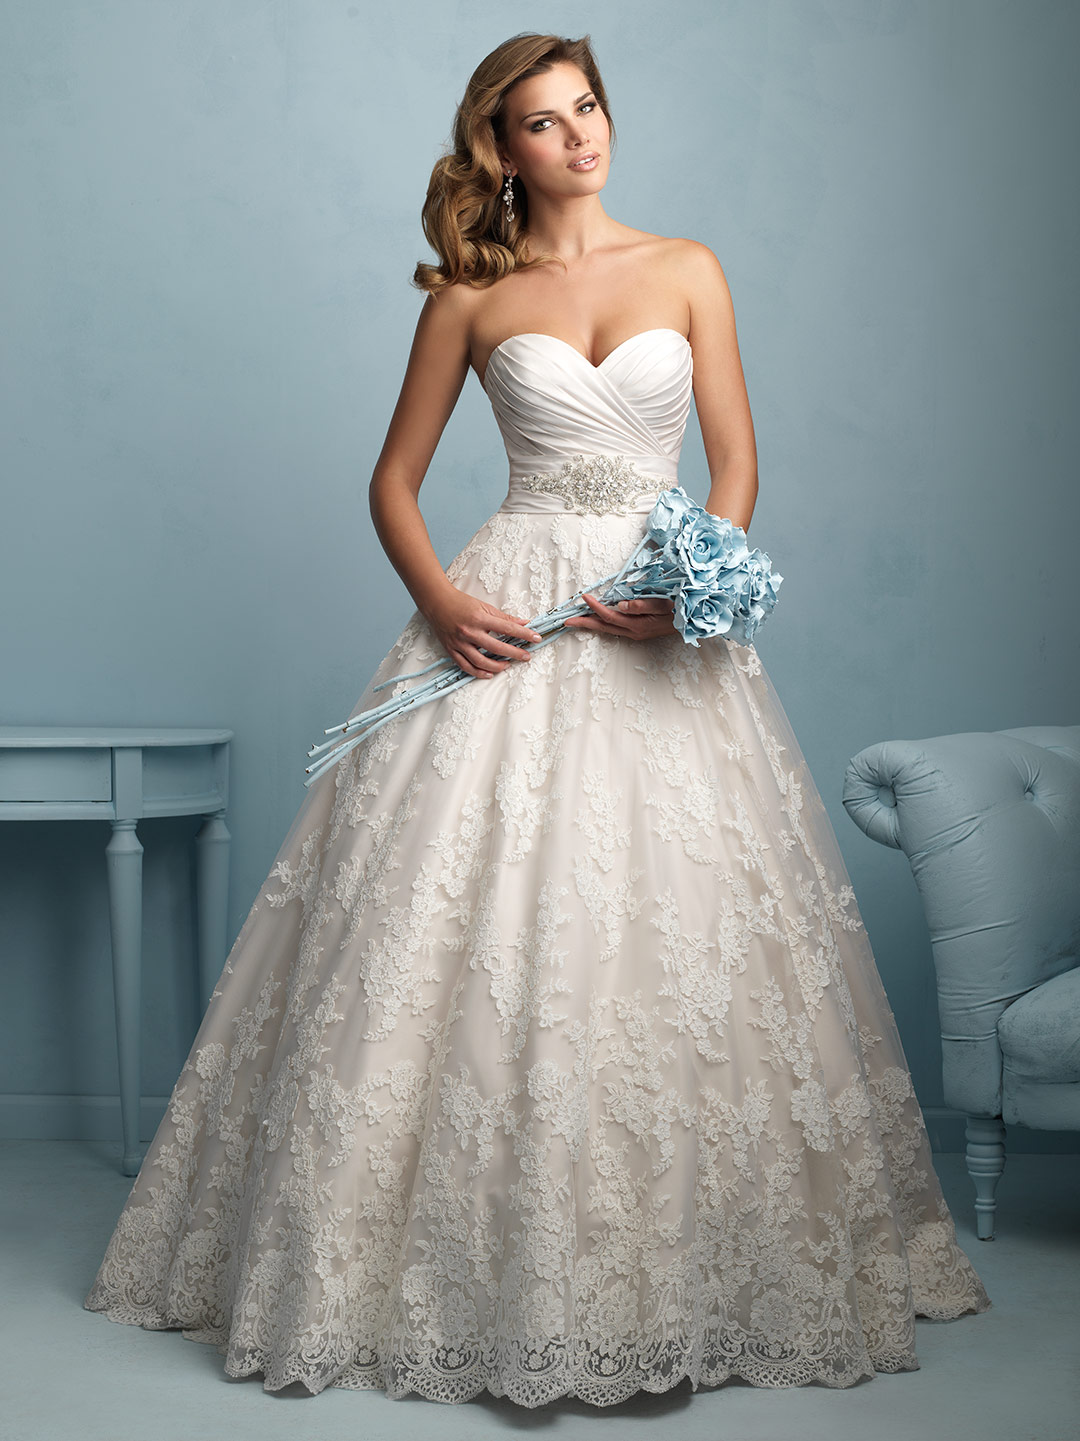 Nice 2015 Bridal Gowns Crest - All Wedding Dresses - kreplicawatches.com